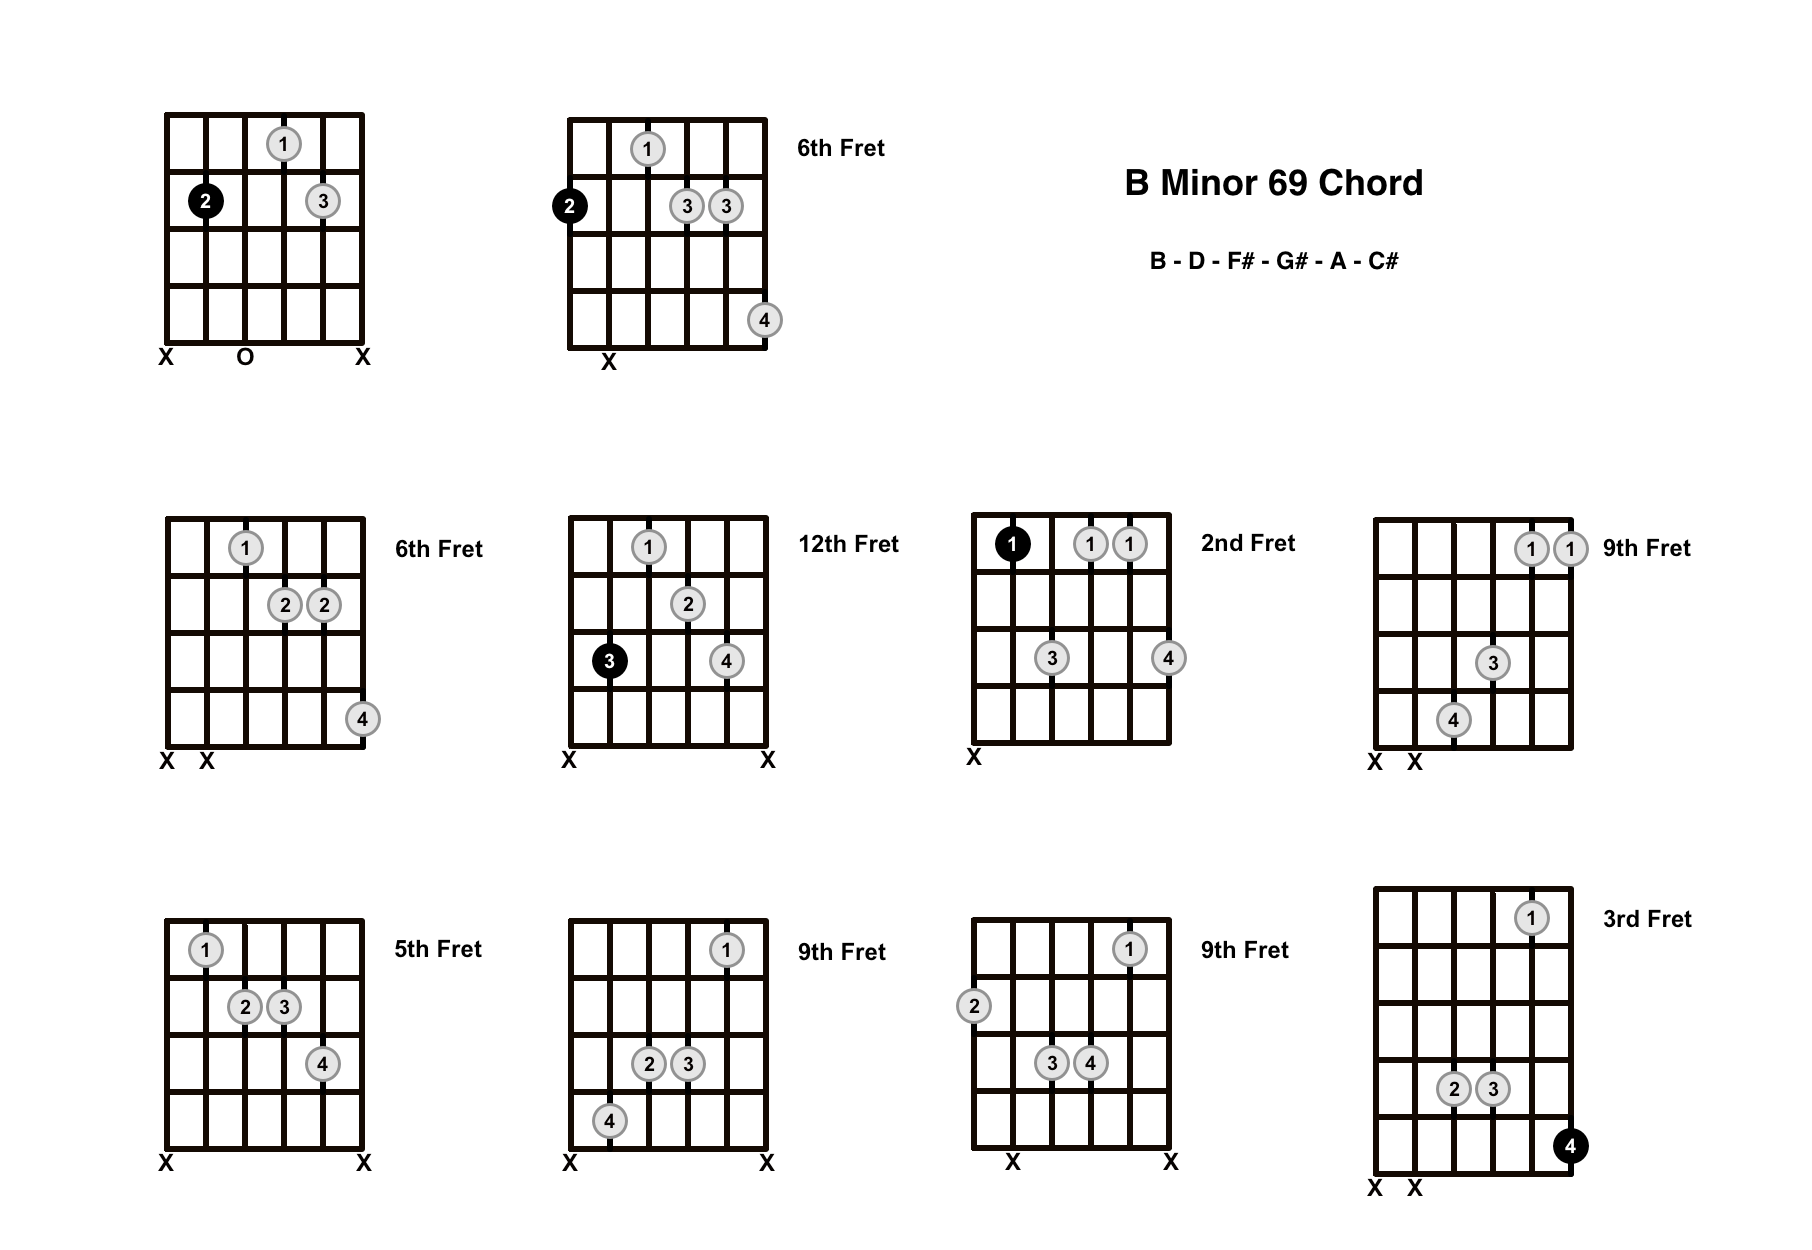 Bm69 Chord On The Guitar (B Minor 69) – Diagrams, Finger Positions and Theory